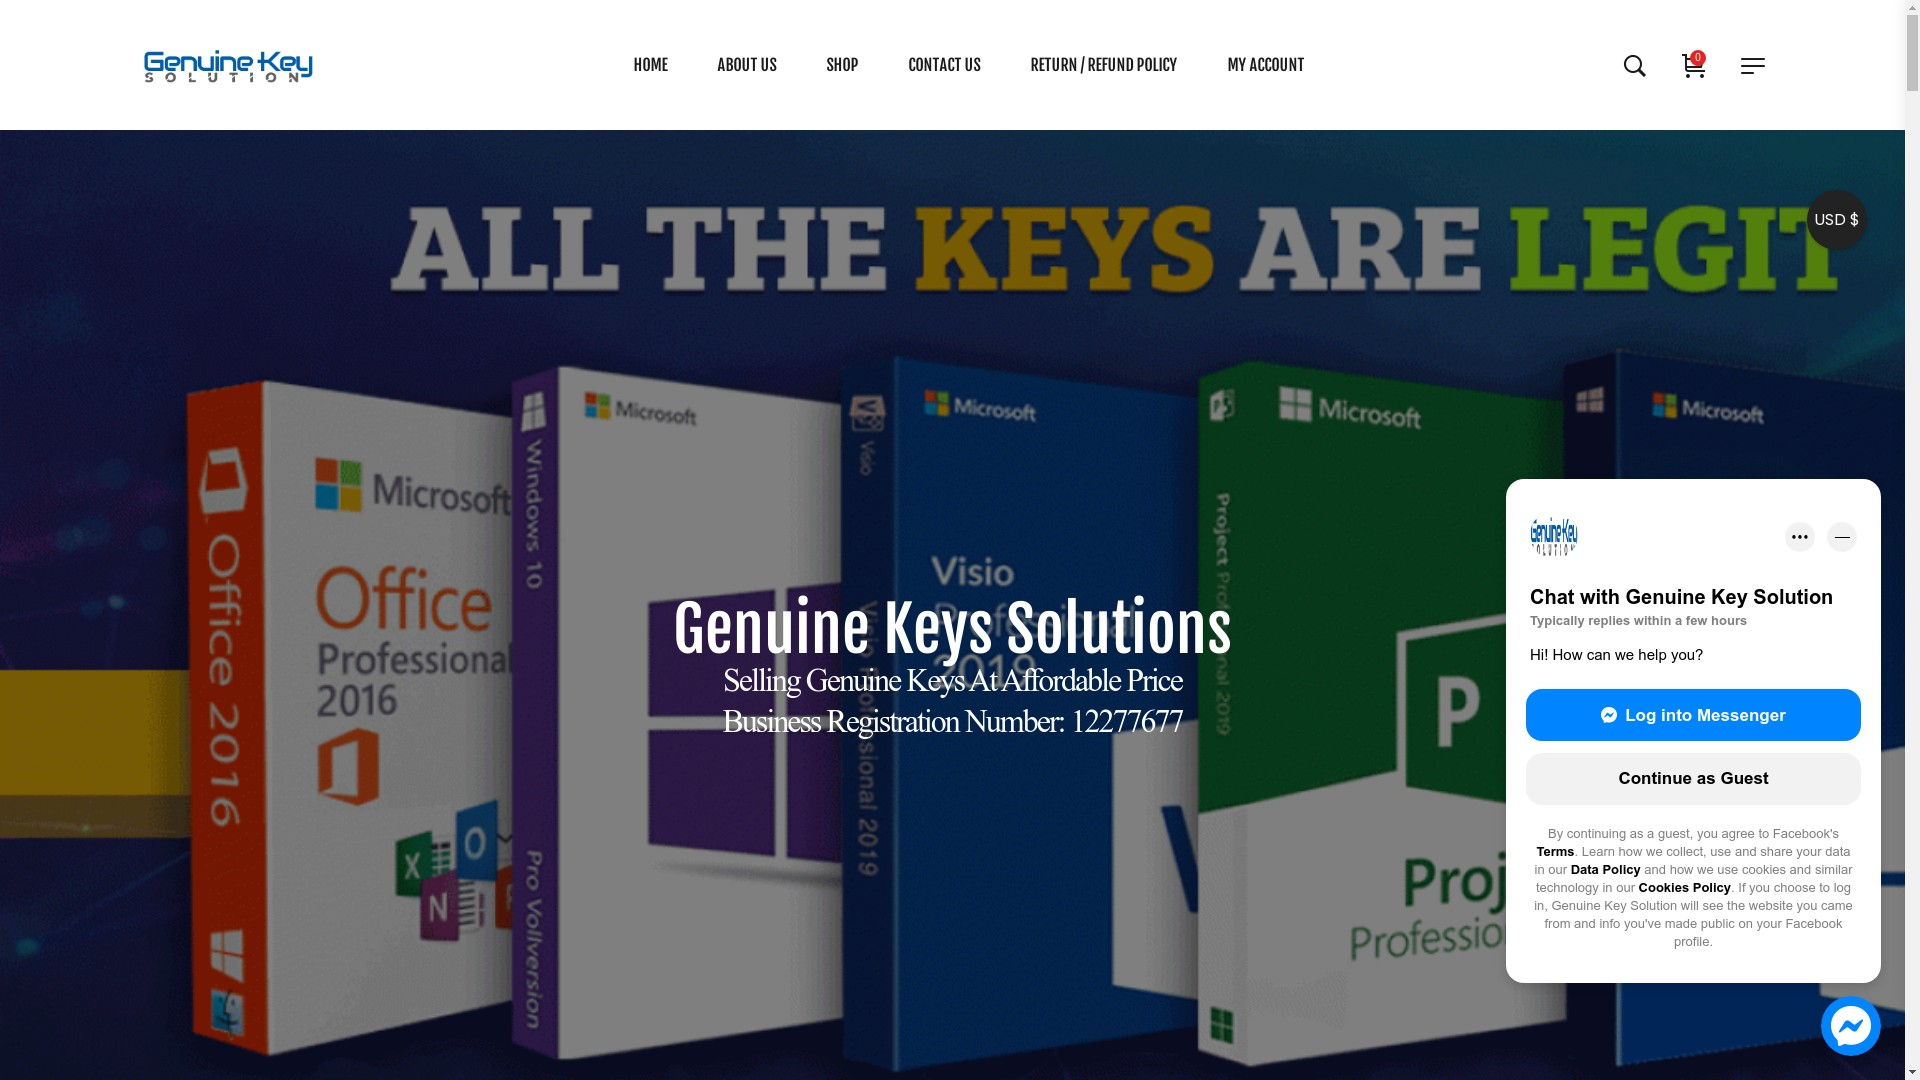 Is Genuine Key Solution a Scam? Review of the Online Store